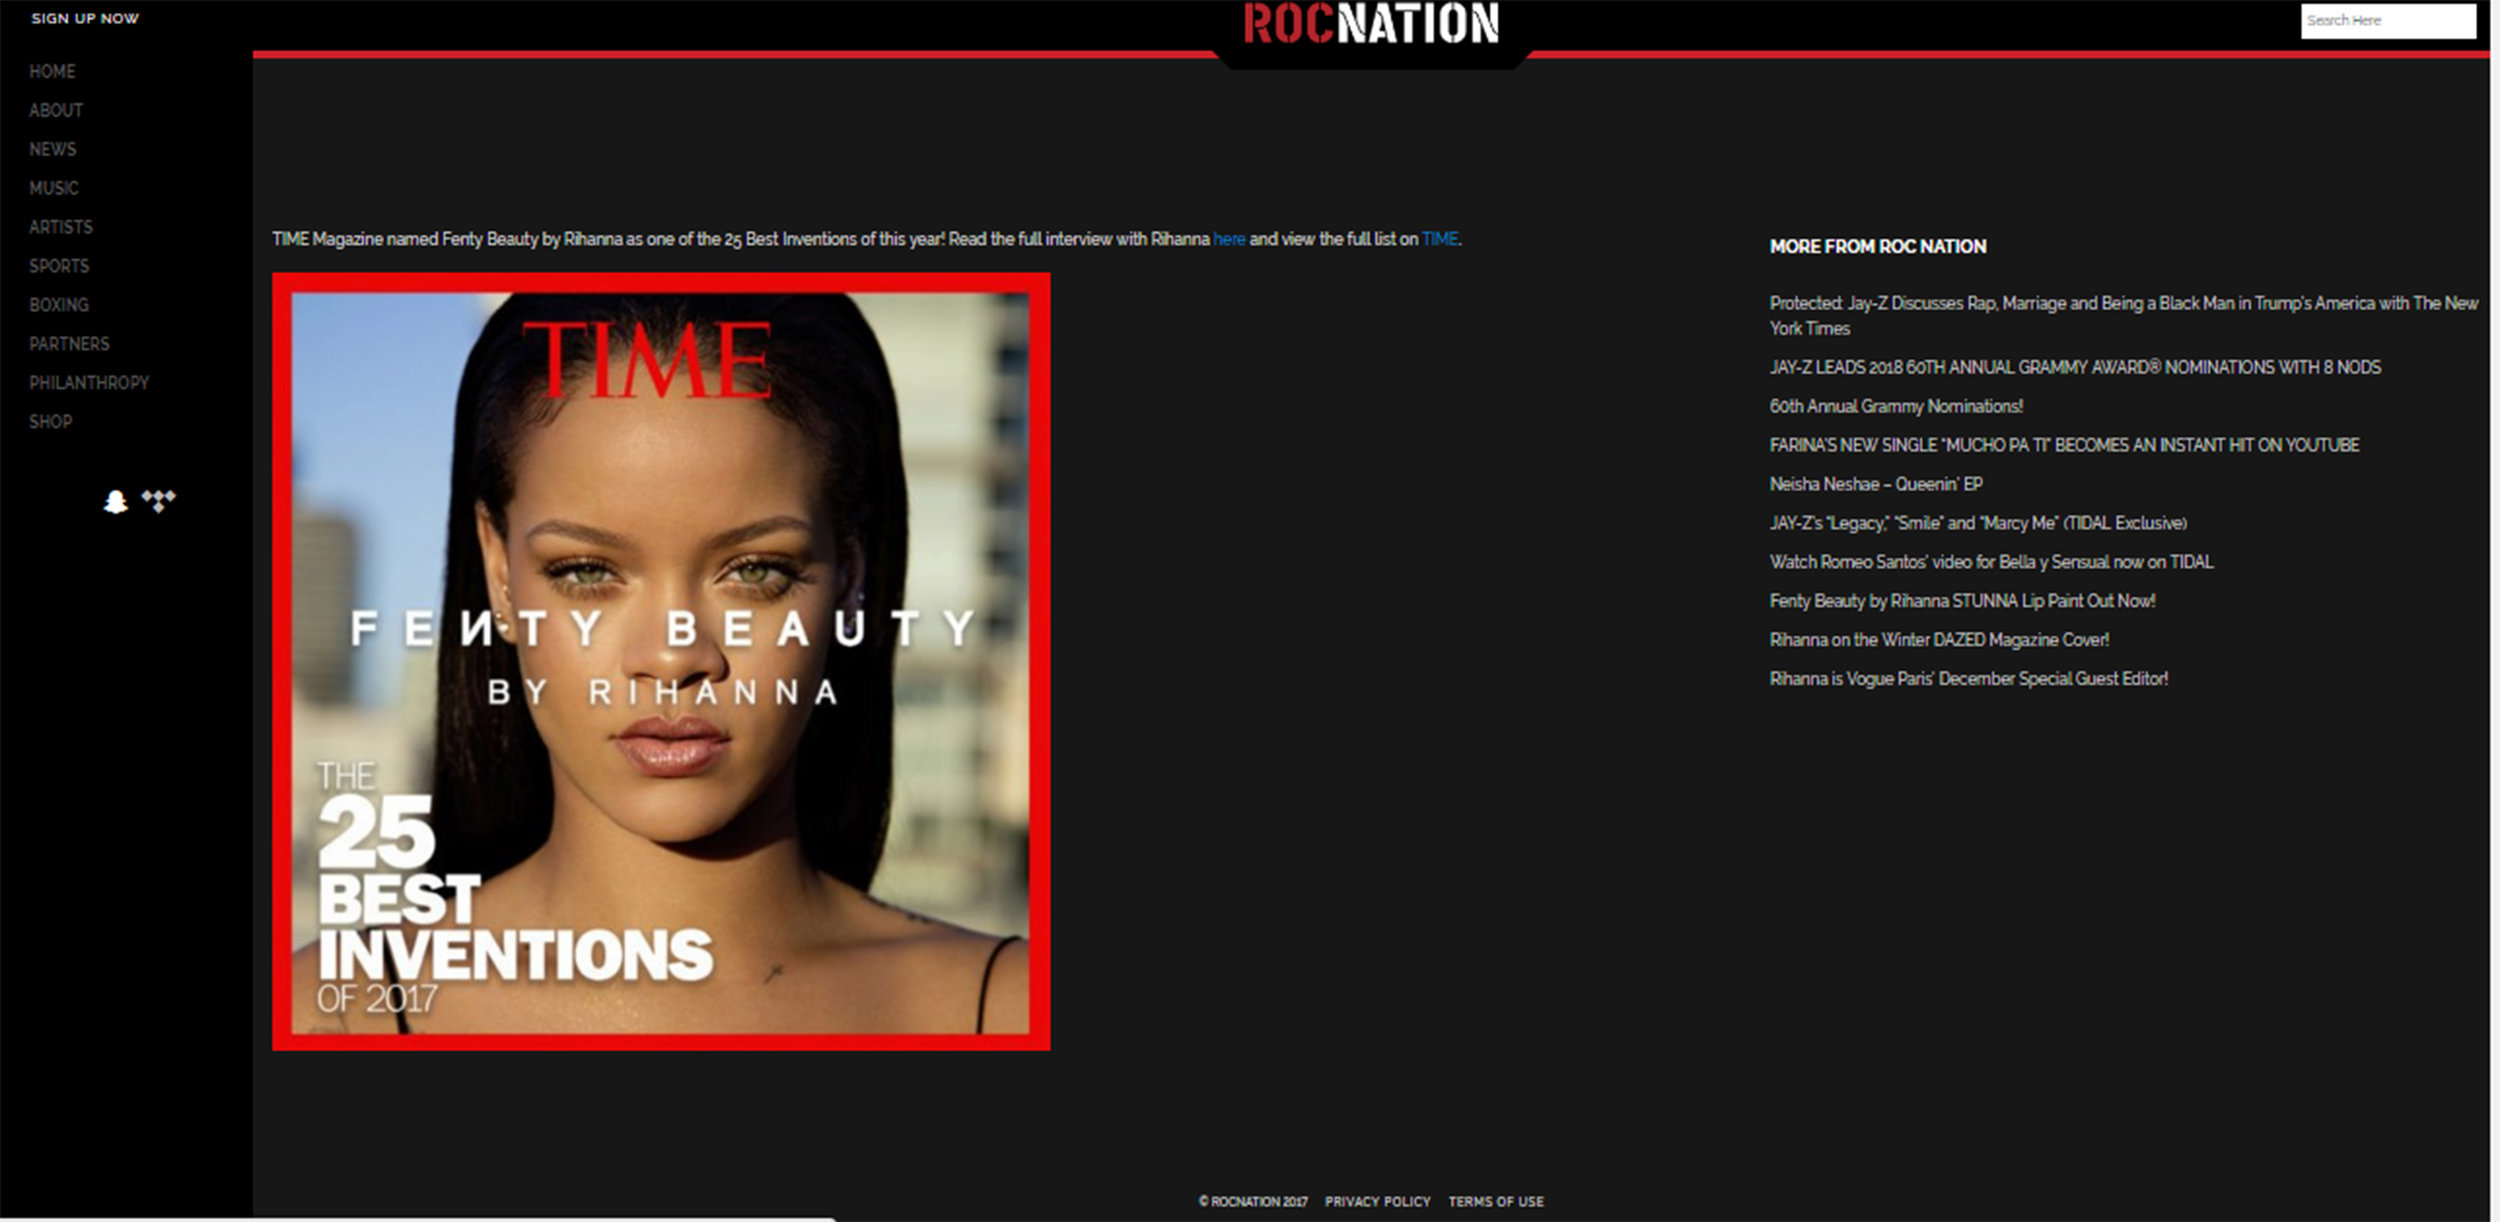 Roc Nation | TIME Best 25 Inventions of 2017